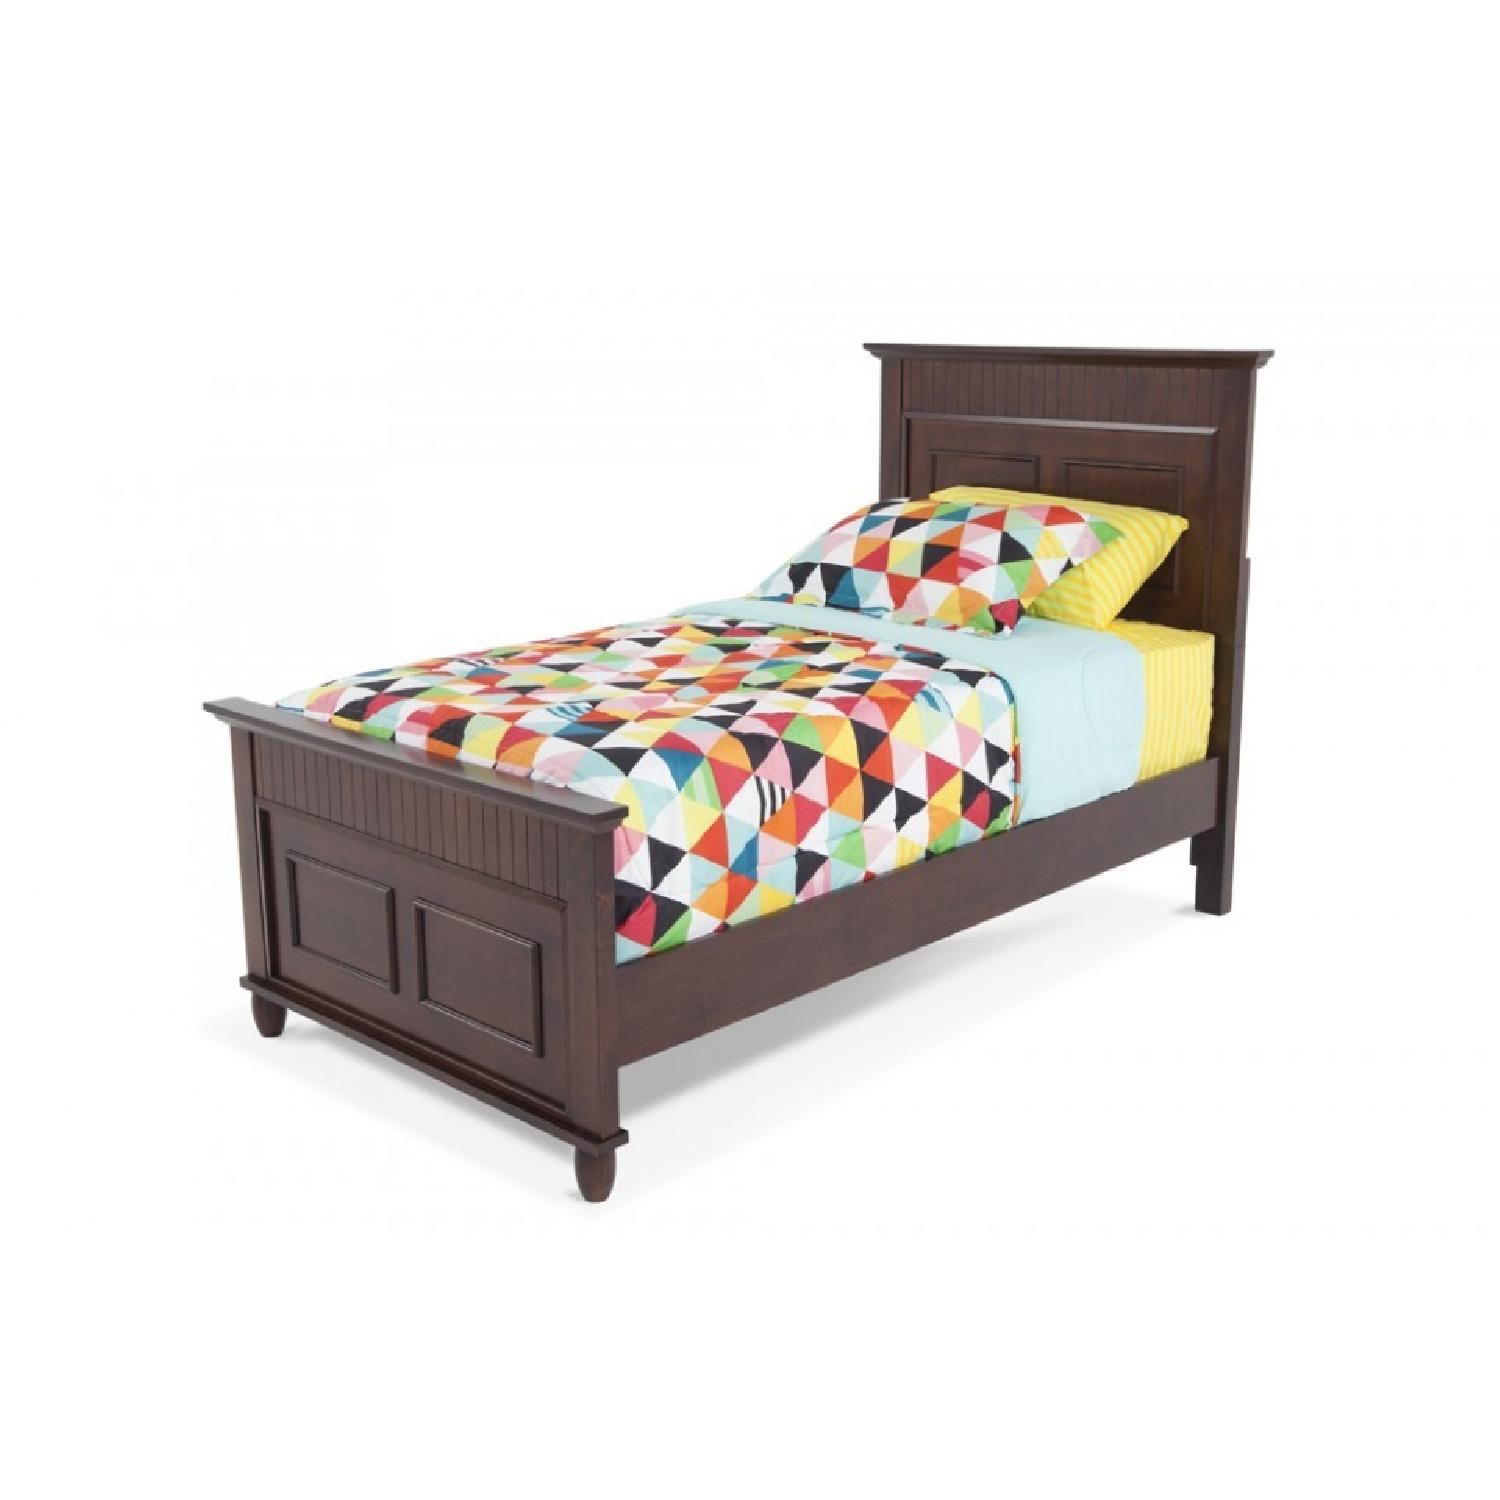 Bob's Spencer Cherry Twin Bed - image-0